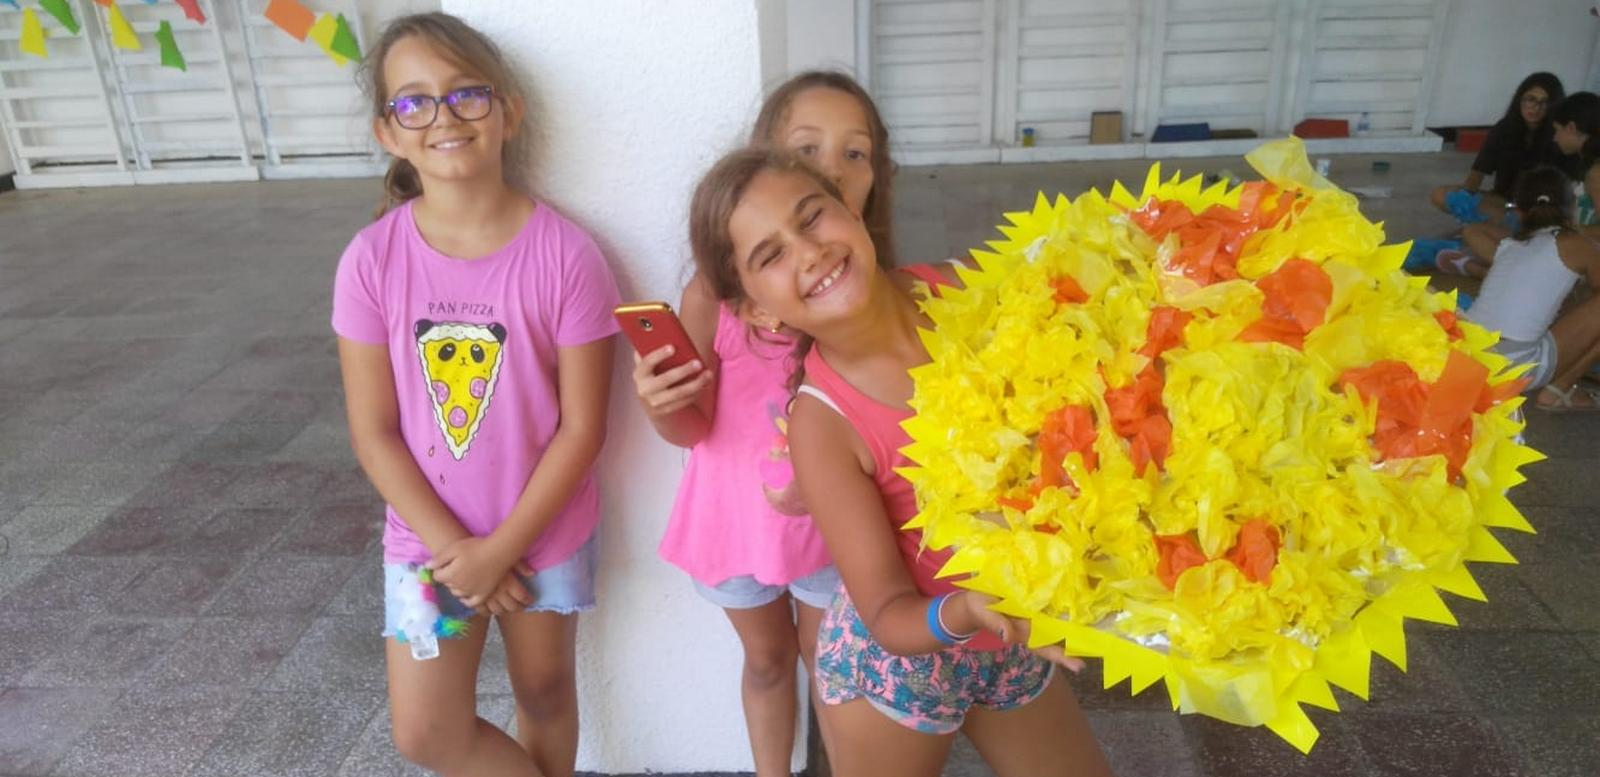 Z camp, Day 20 - Arts and crafts - 3 girls in pink with a paper bouquet of yellow flowers